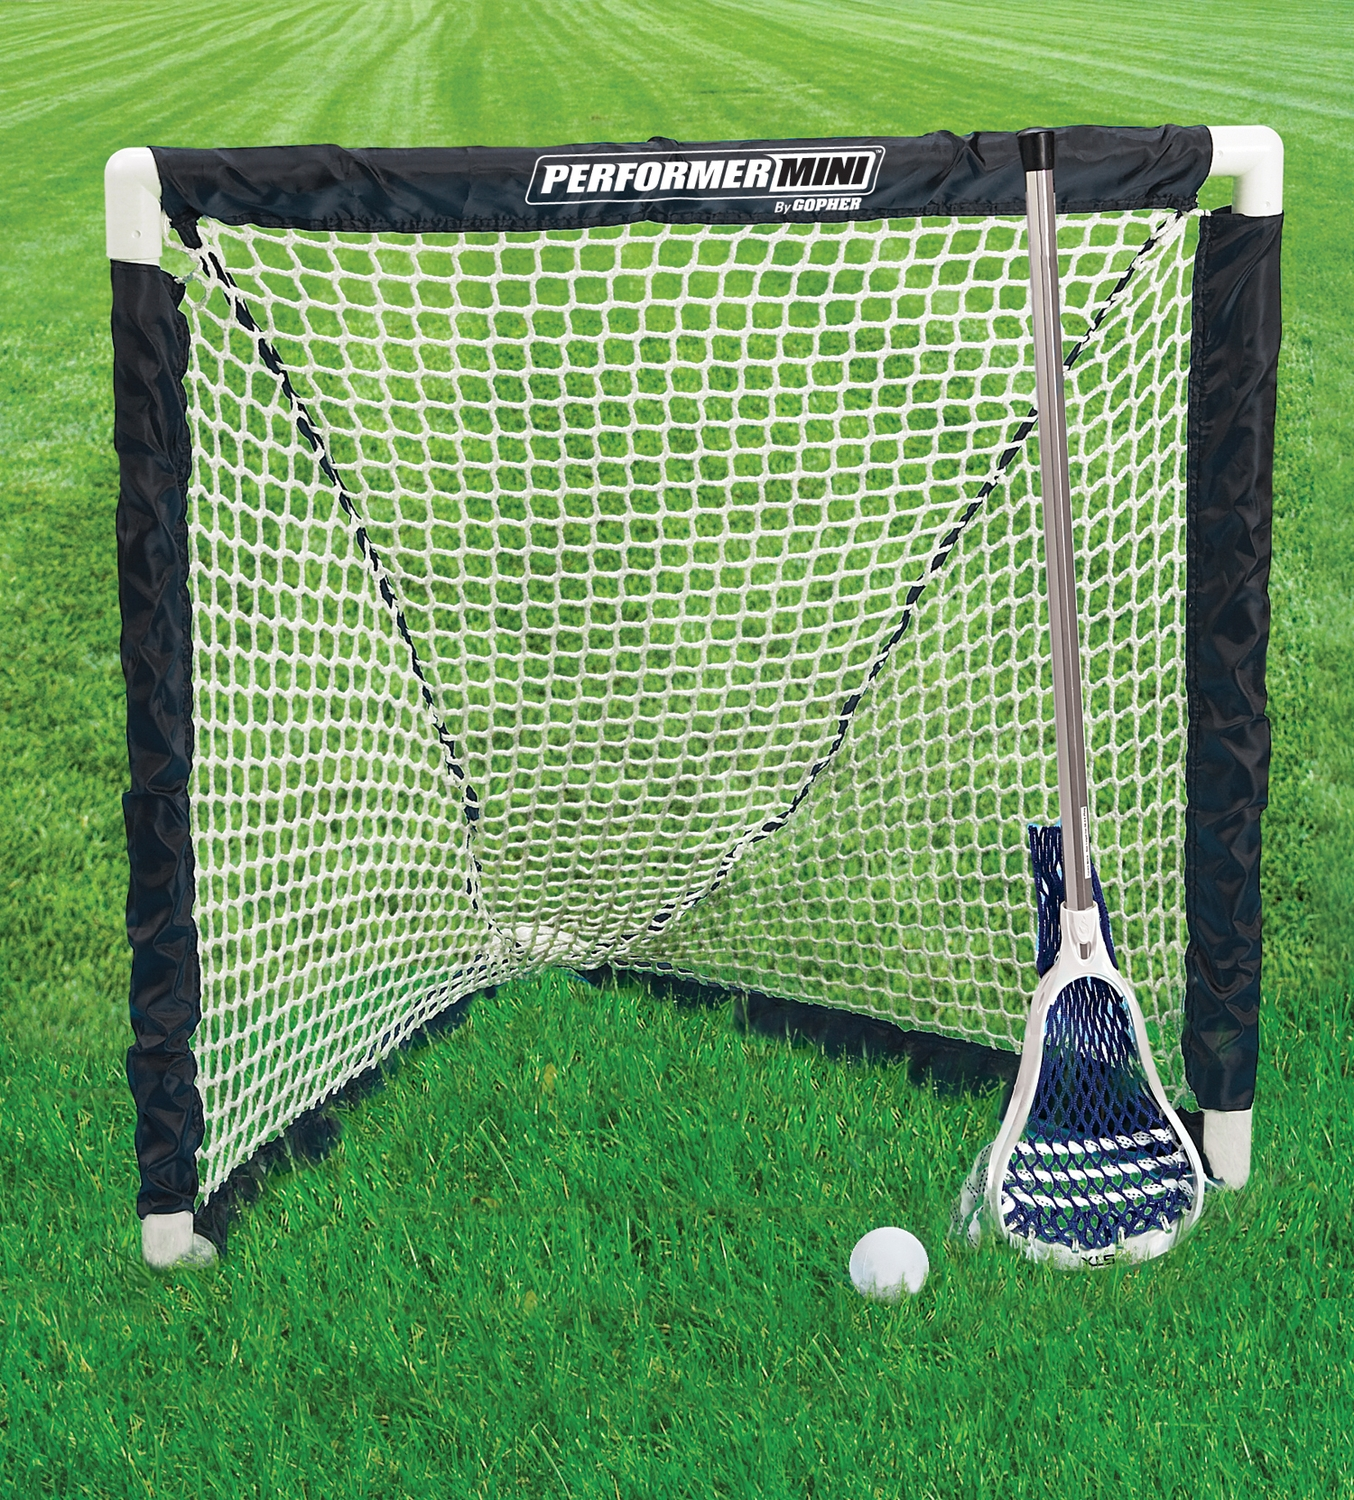 Gopher Performer Mini™ Lacrosse Goal